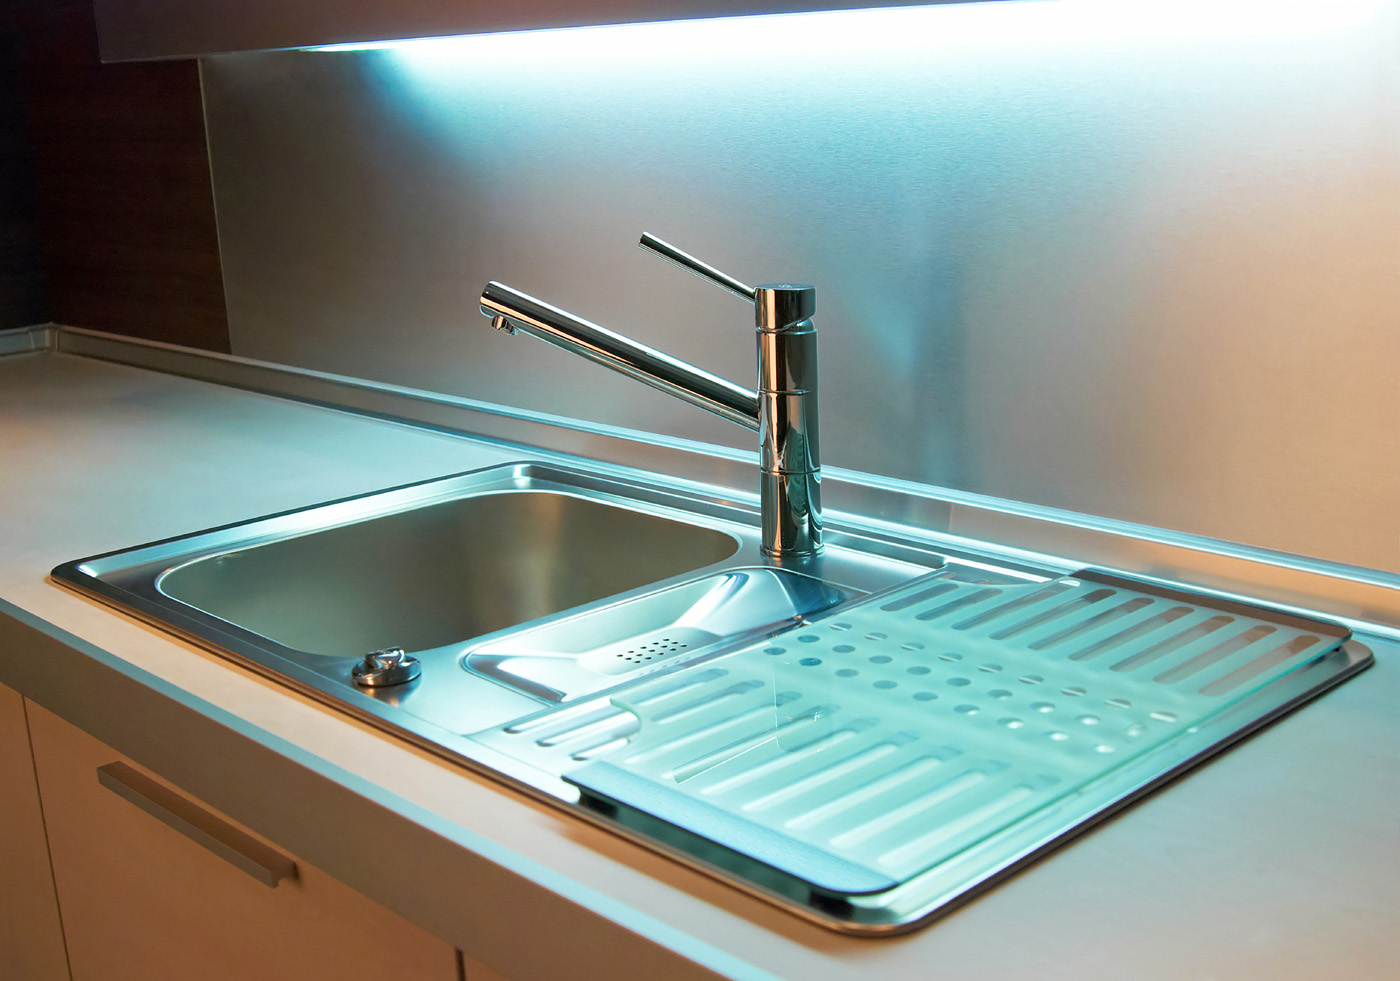 Sink and faucet lights and under 51093